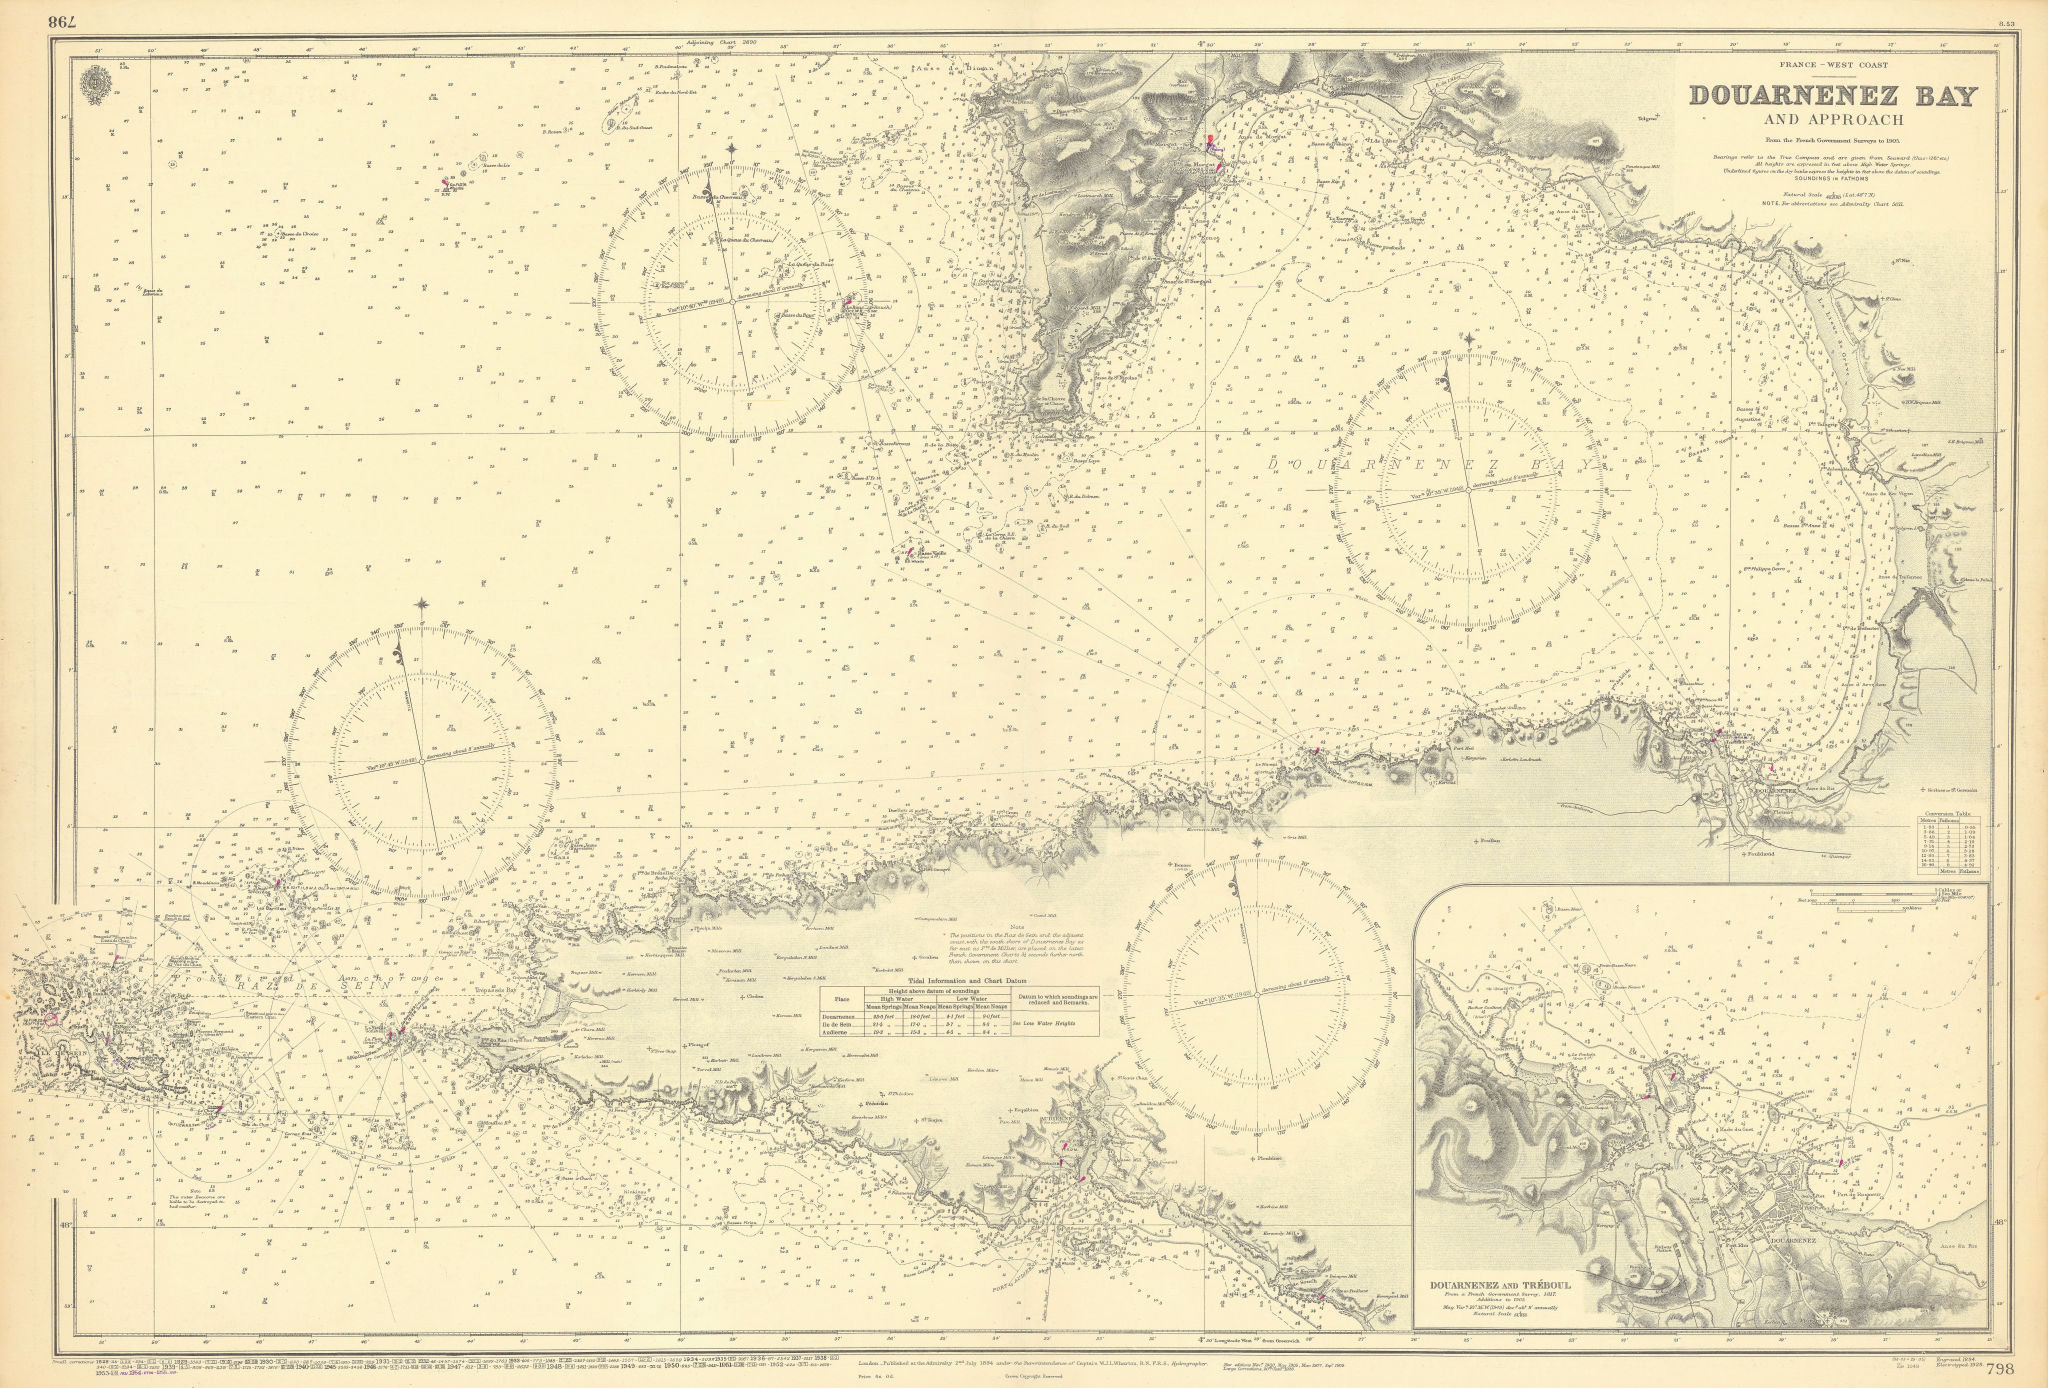 Douarnenez Bay & approaches. Finistère. ADMIRALTY sea chart 1894 (1955) map